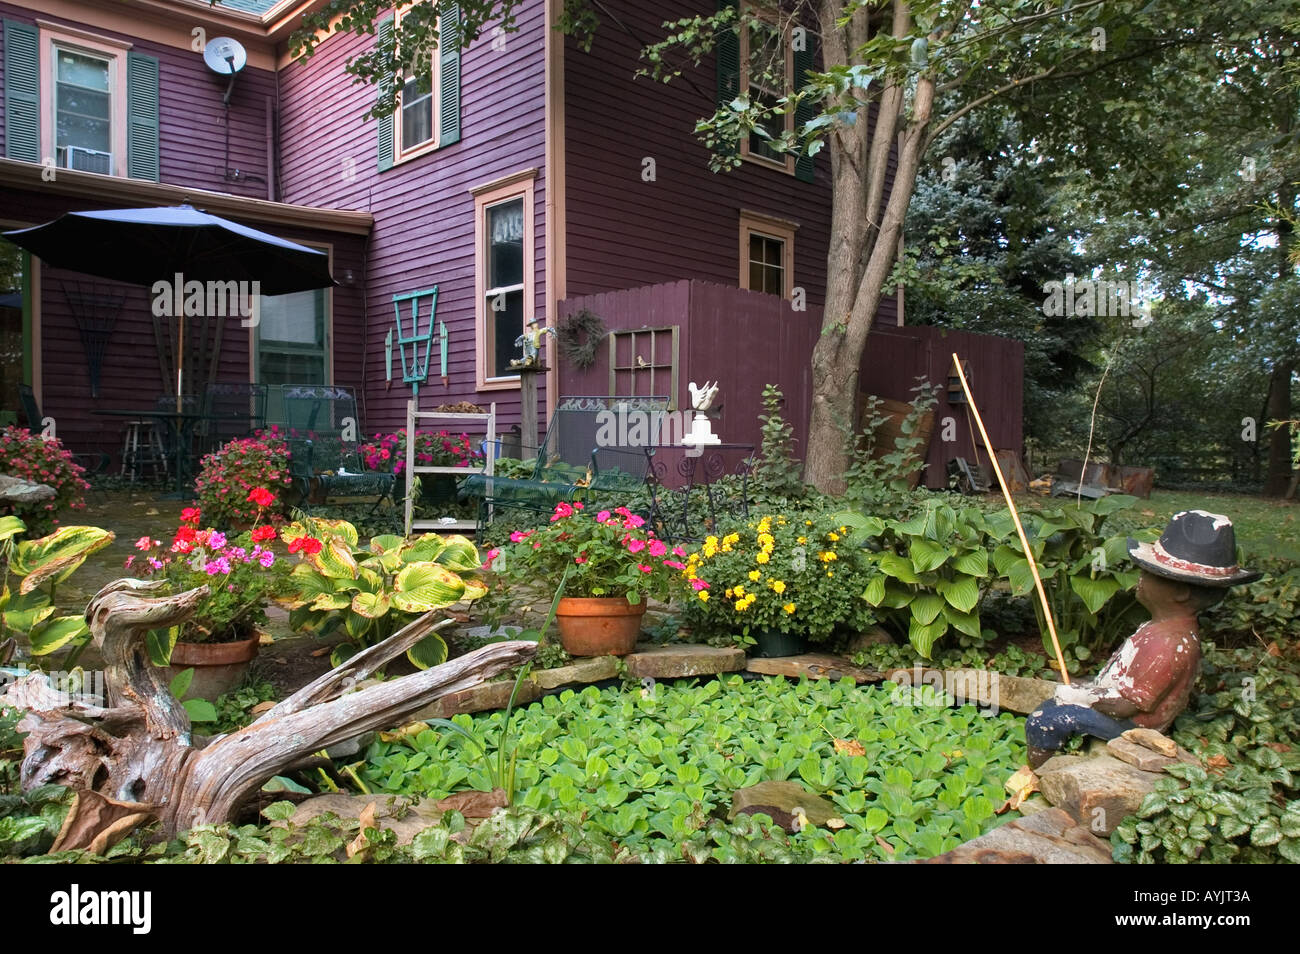 country garden patio and victorian farm house near greenville indiana stock photo 5591097 alamy